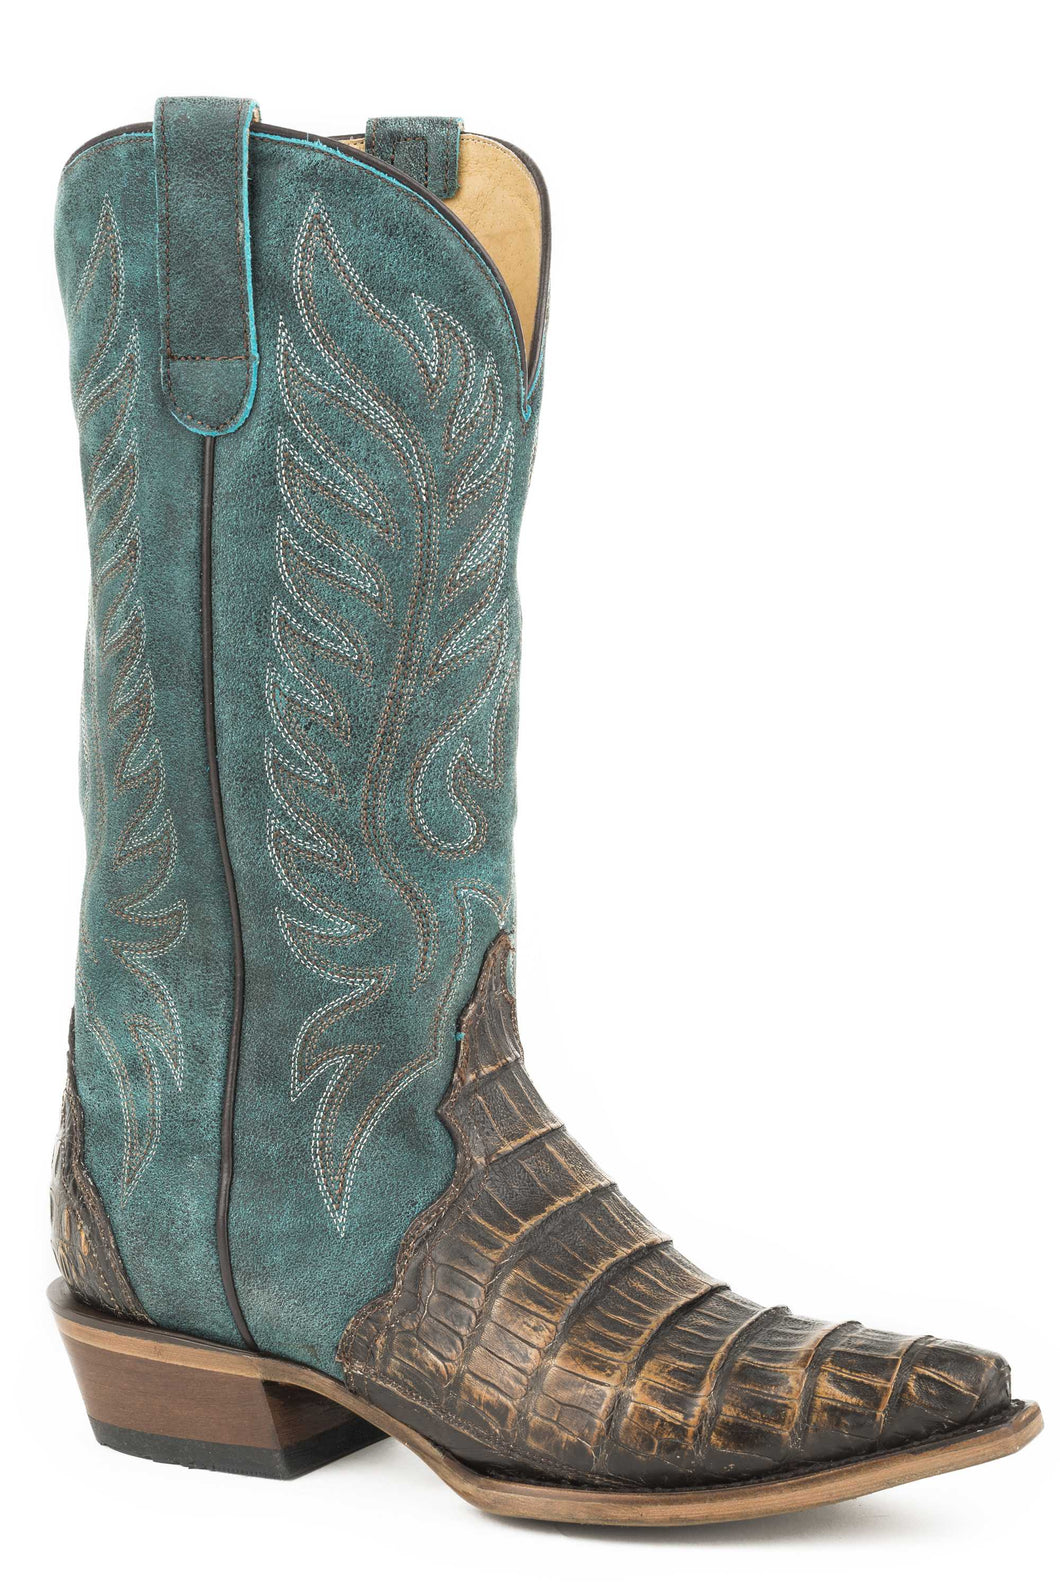 Trudy Triad Boot Womens Boots Brown Caiman Vamp